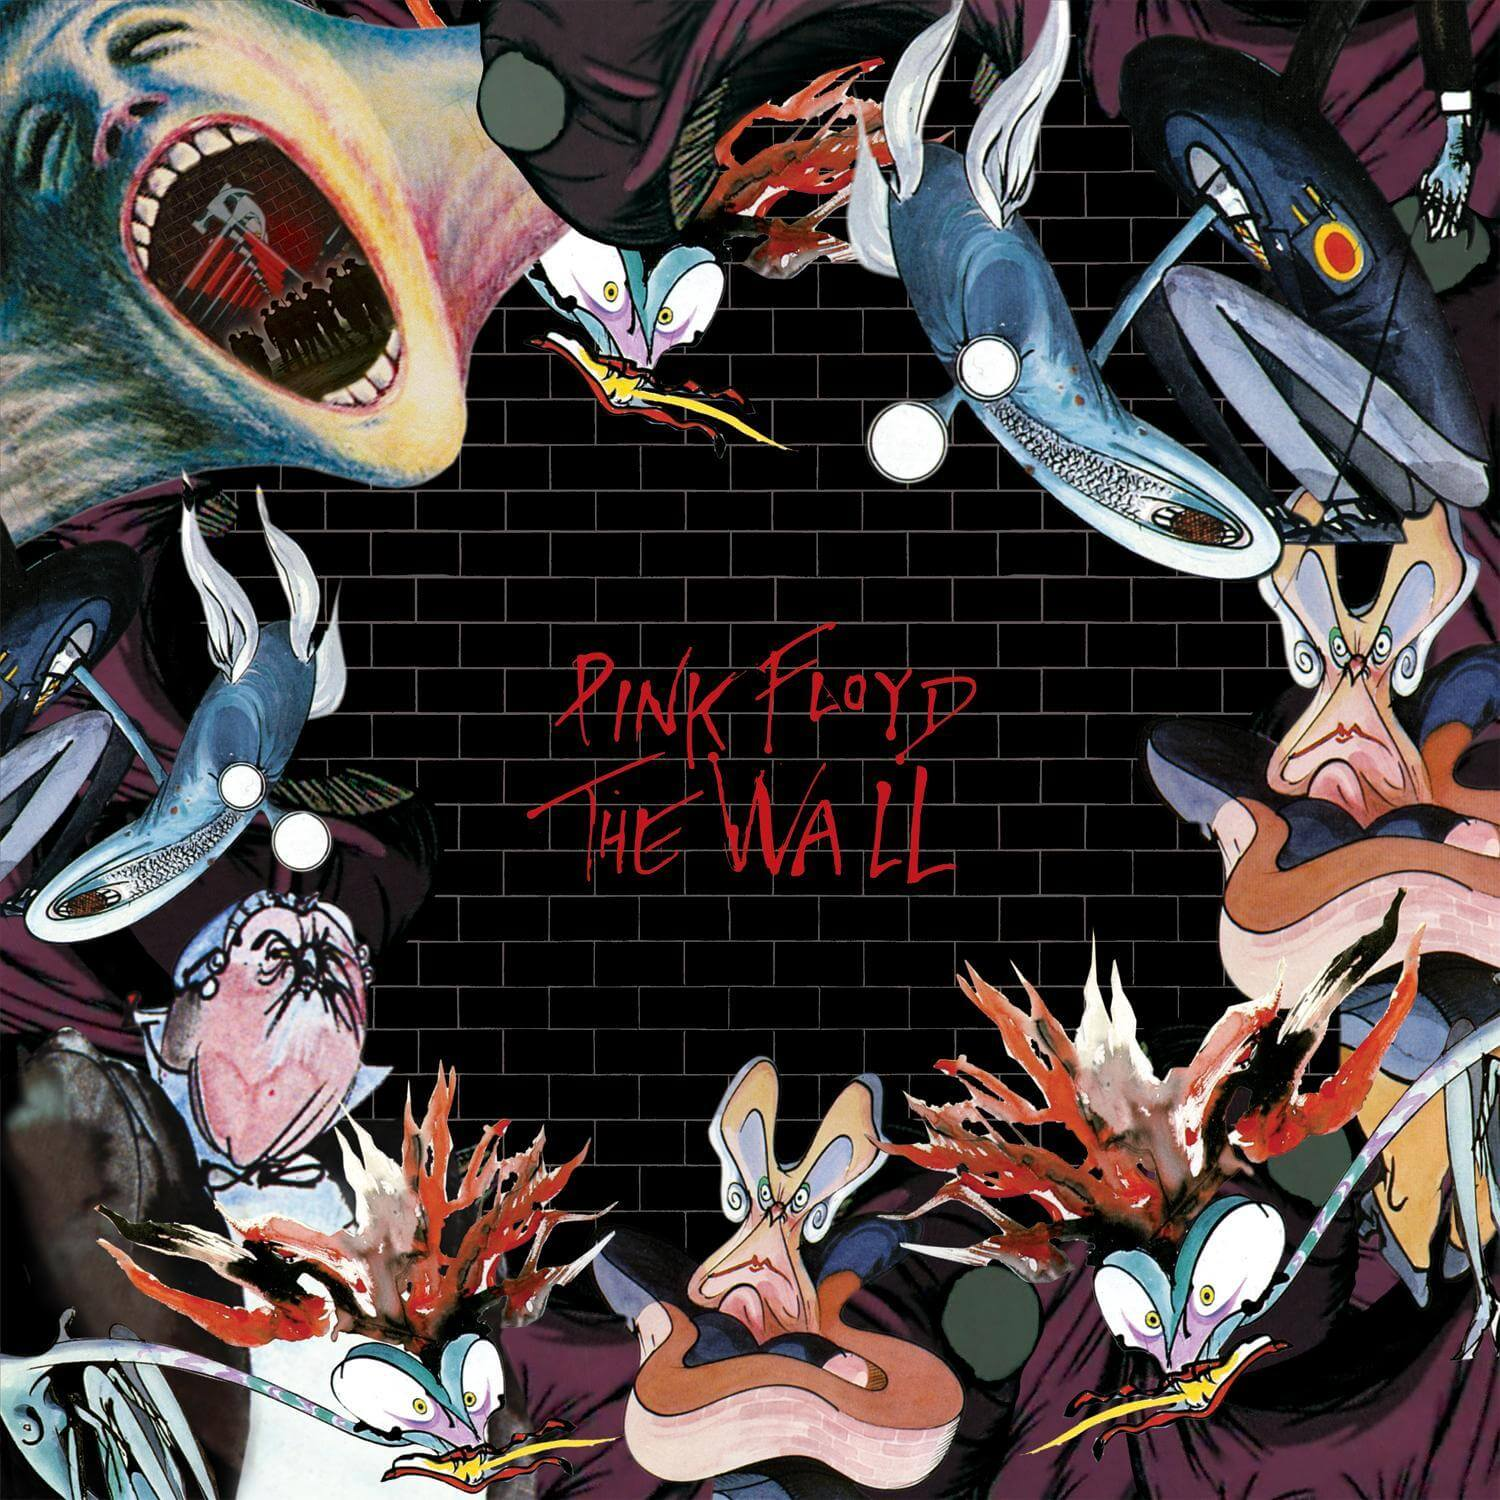 the wall, immersion, box set, is there anybody out there, the wall live, bricks in the wall, roger waters demo